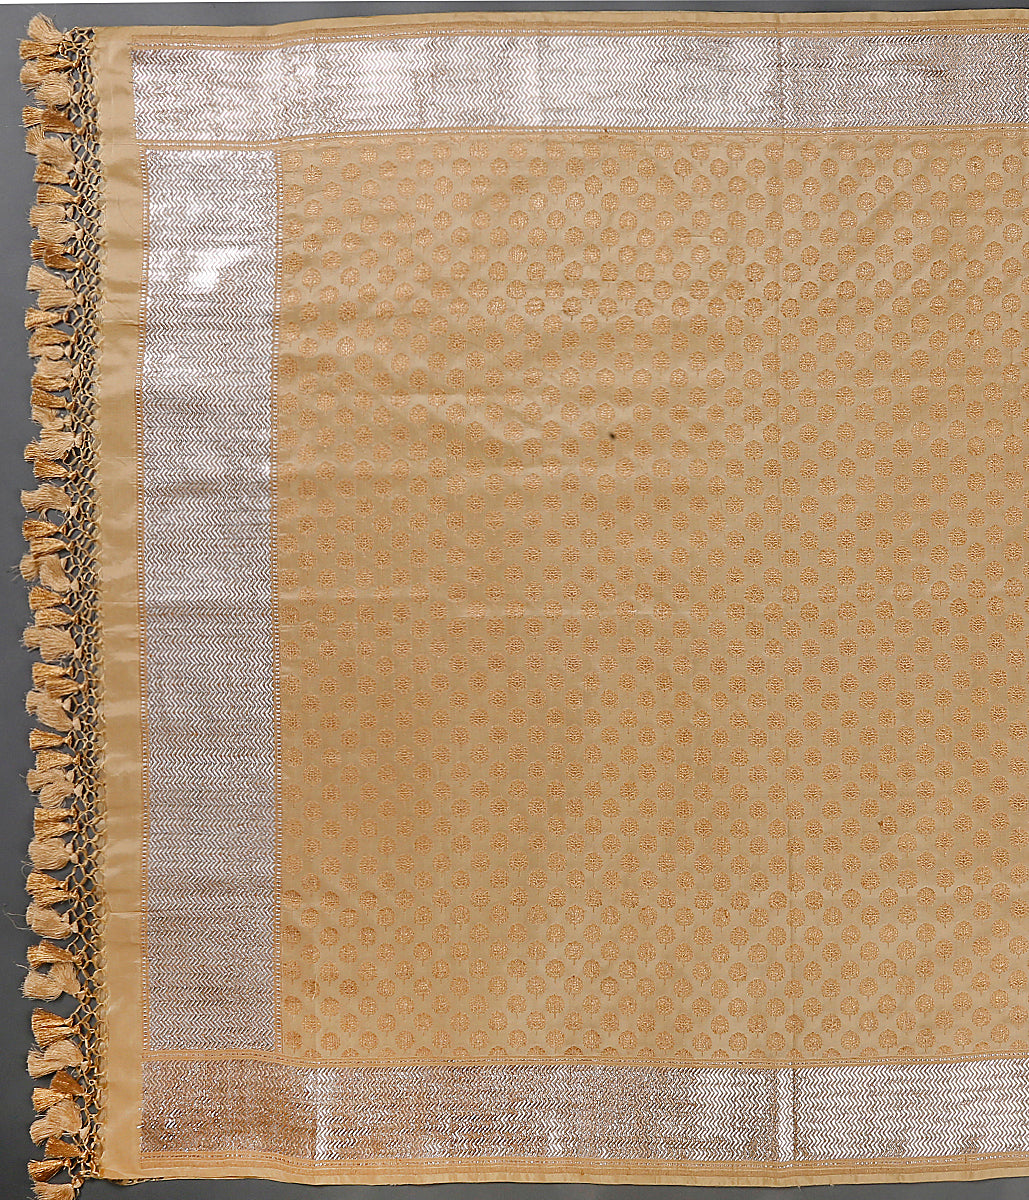 Beige and gold katan silk dupatta with traditional booti